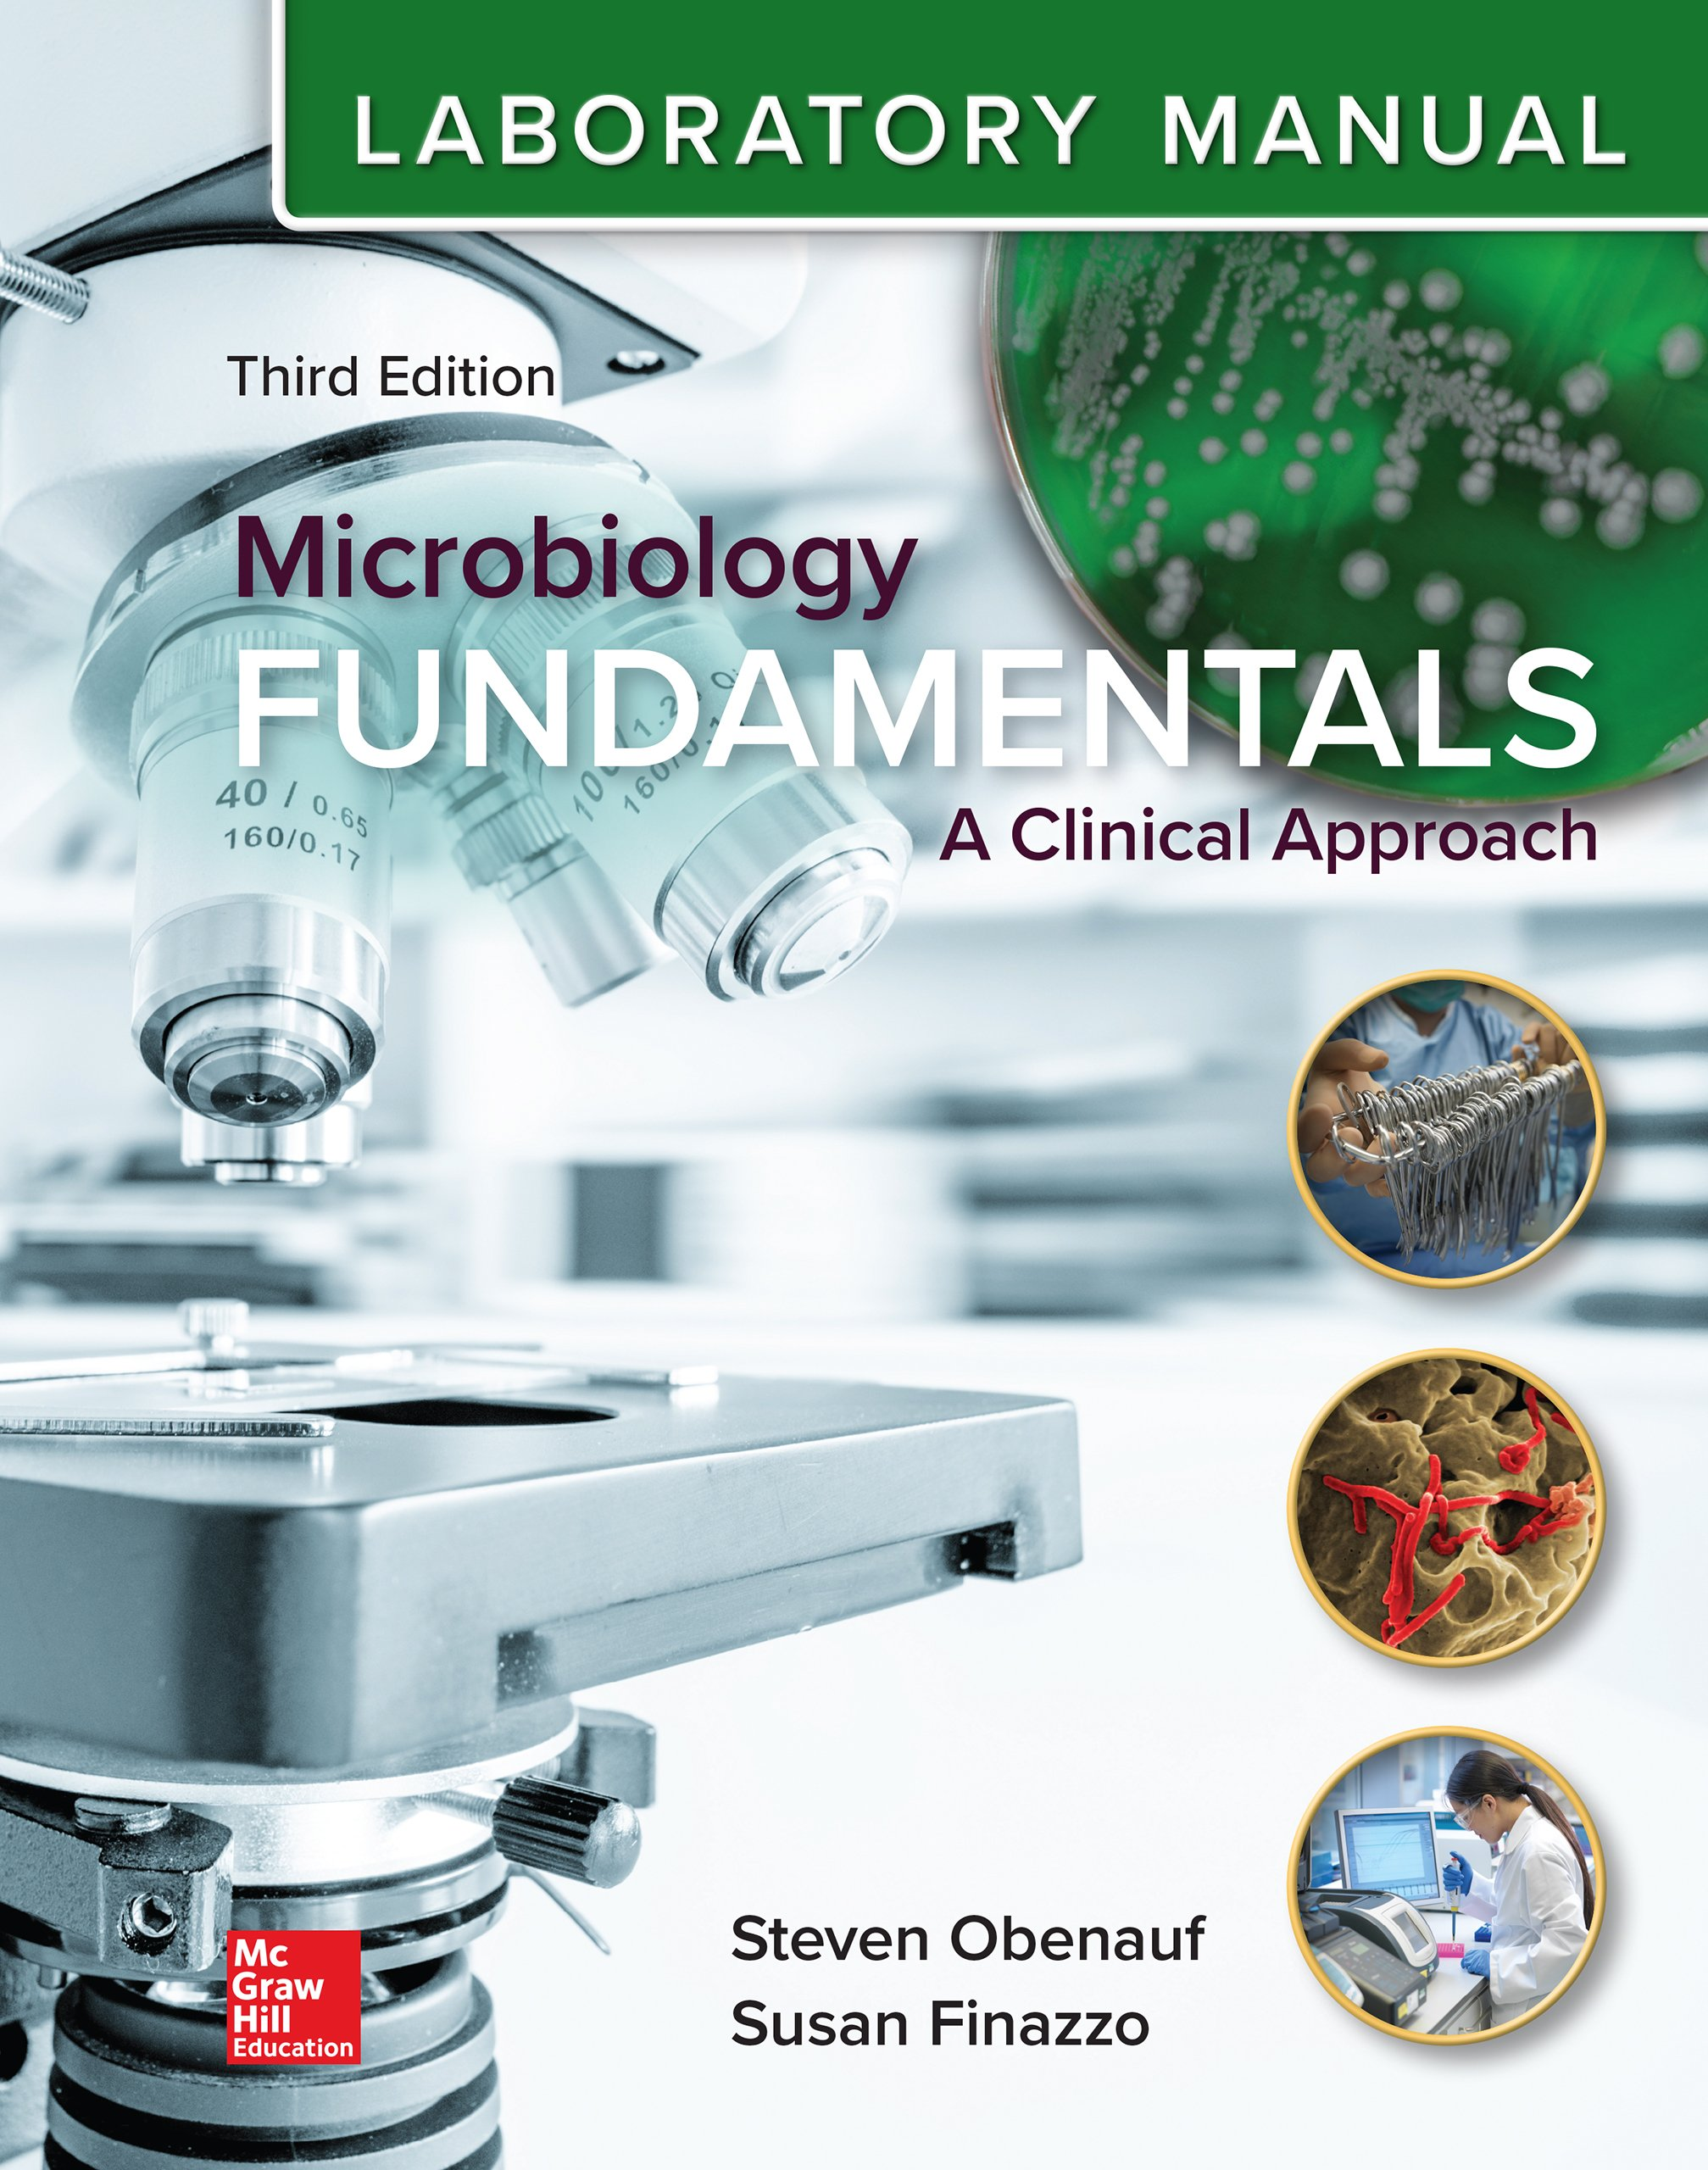 Download Laboratory Manual For Microbiology Fundamentals: A Clinical Approach 